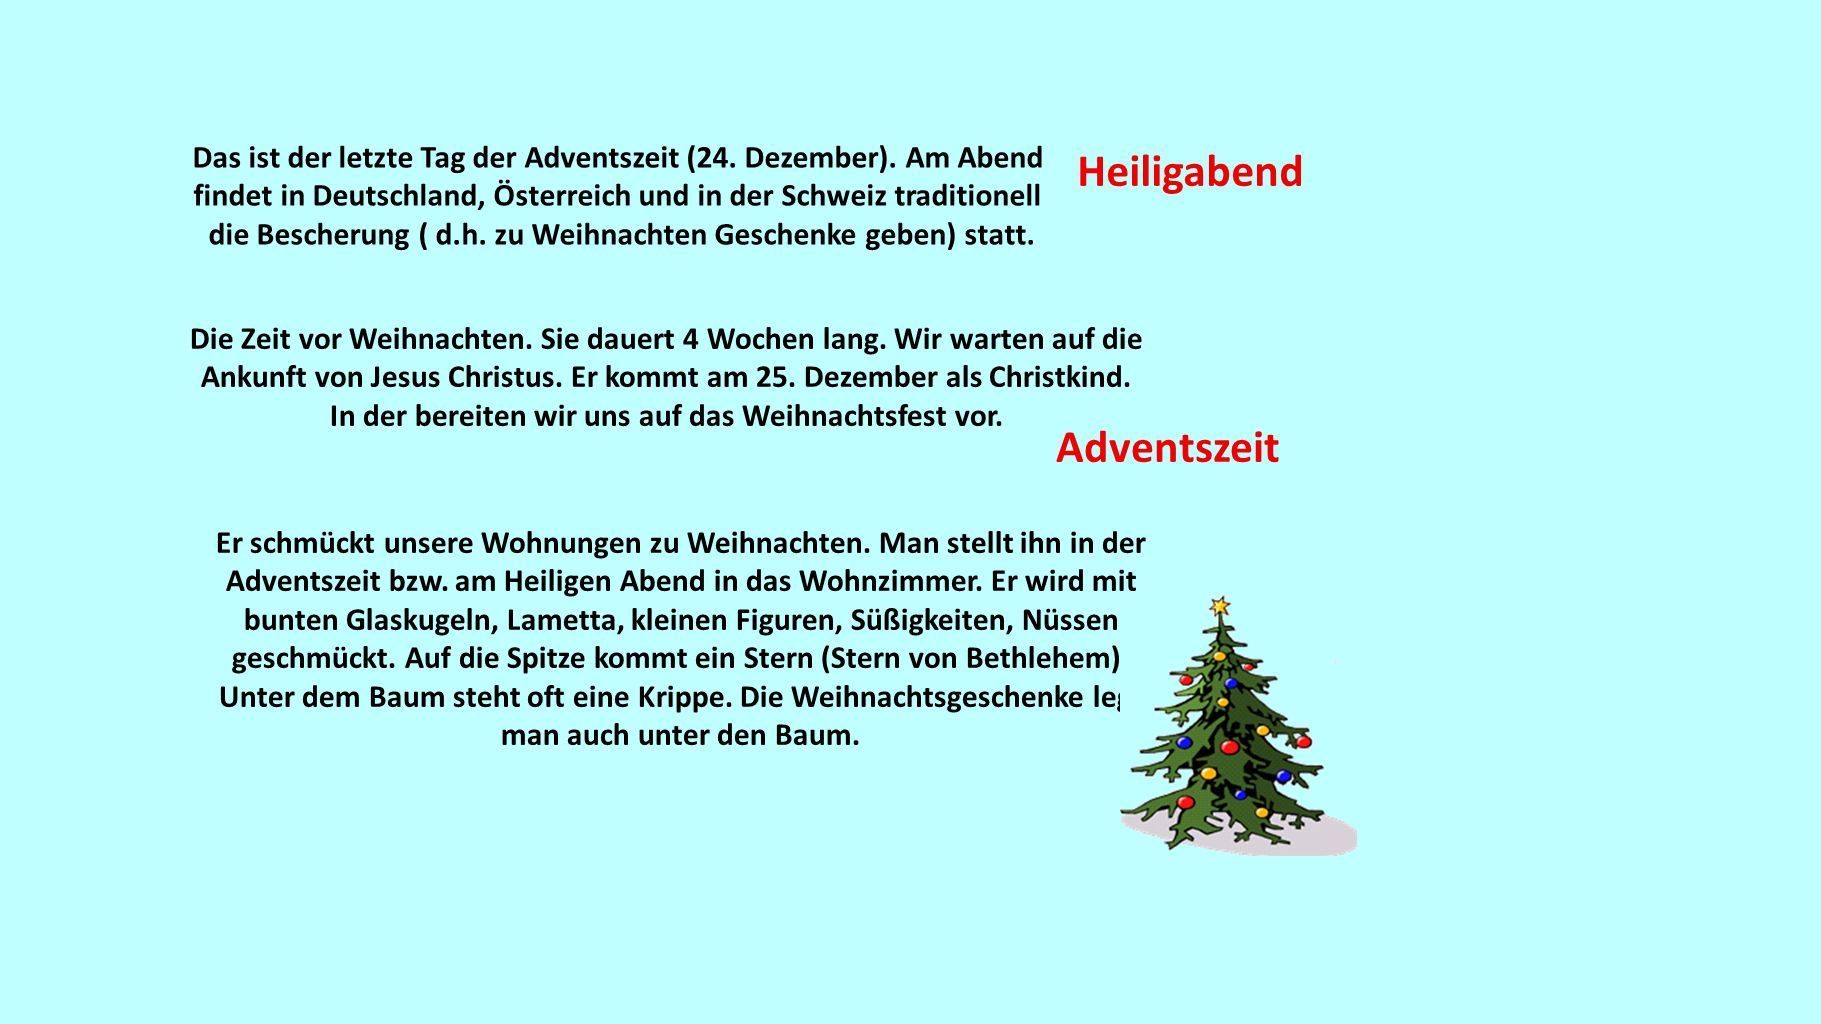 Heiligabend Adventszeit